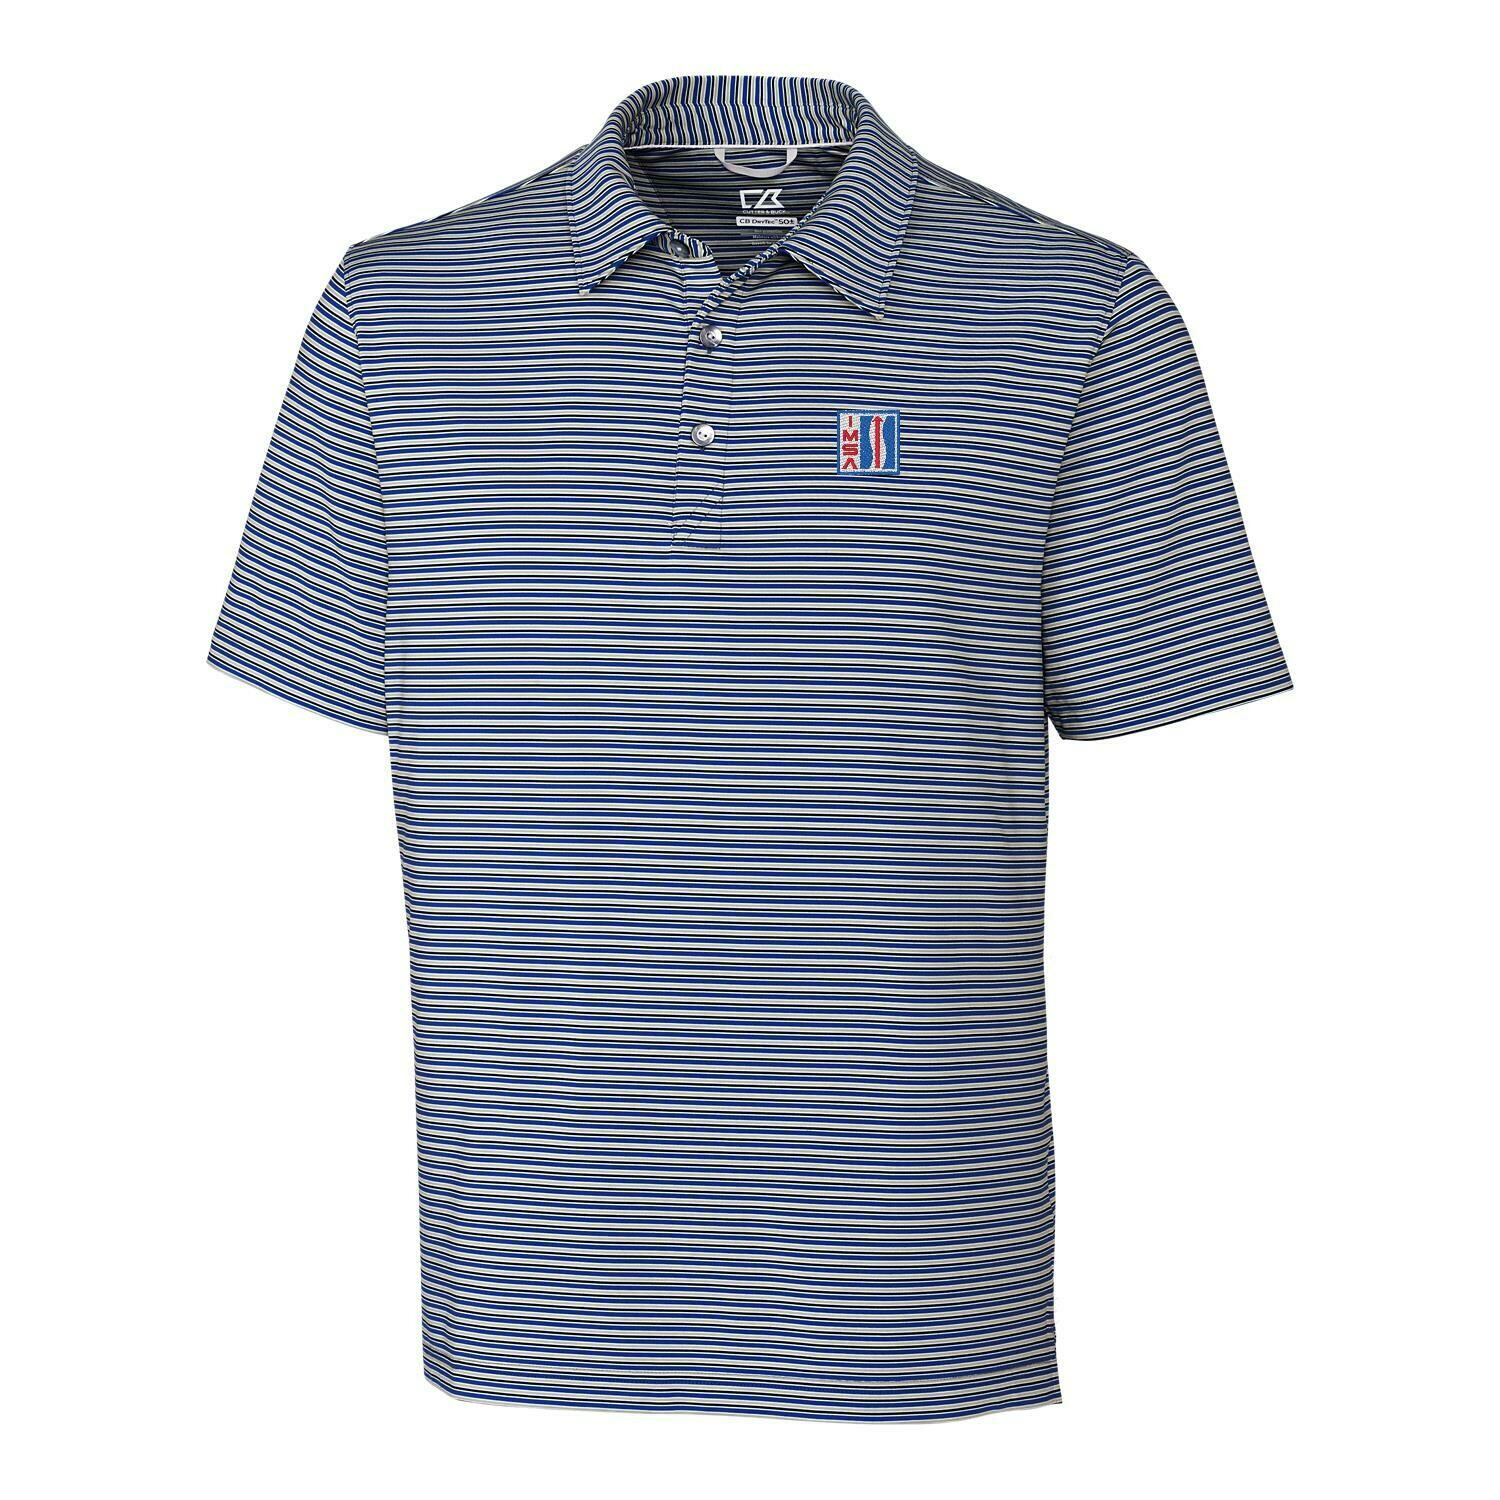 IMSA Retro Division Stripe Polo - Blue Polished